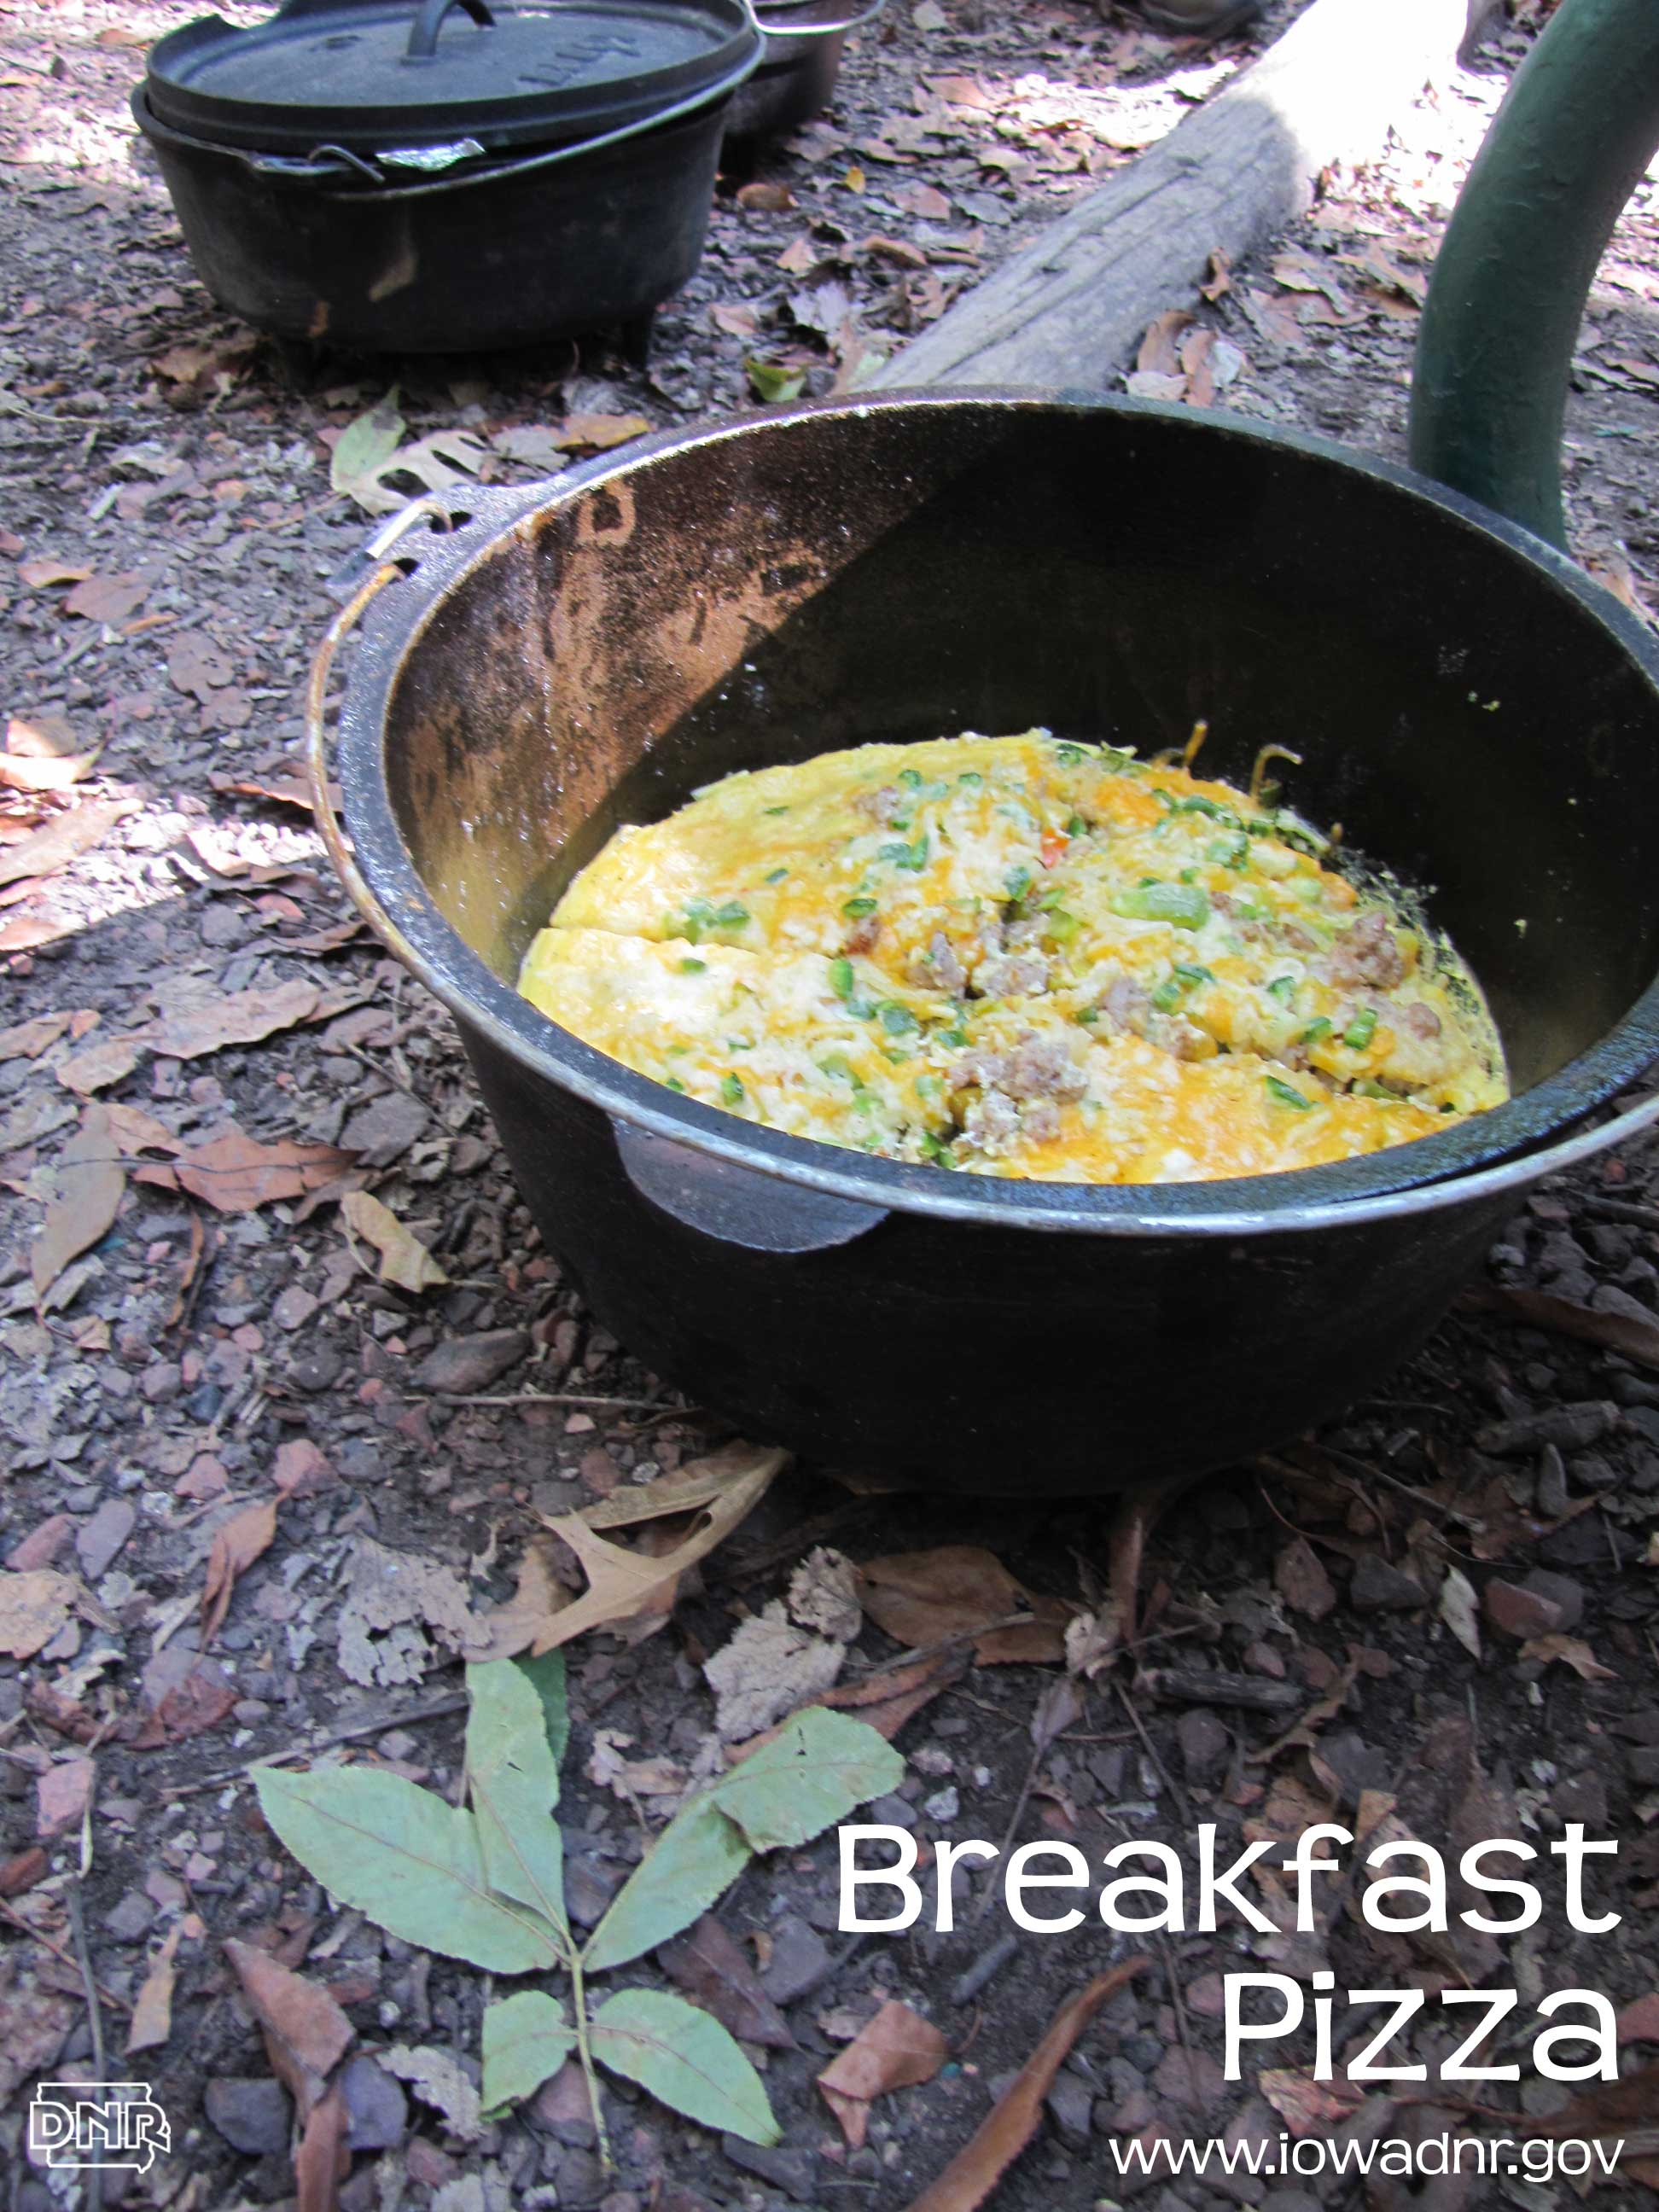 Dutch oven breakfast pizza recipe from the Iowa DNR